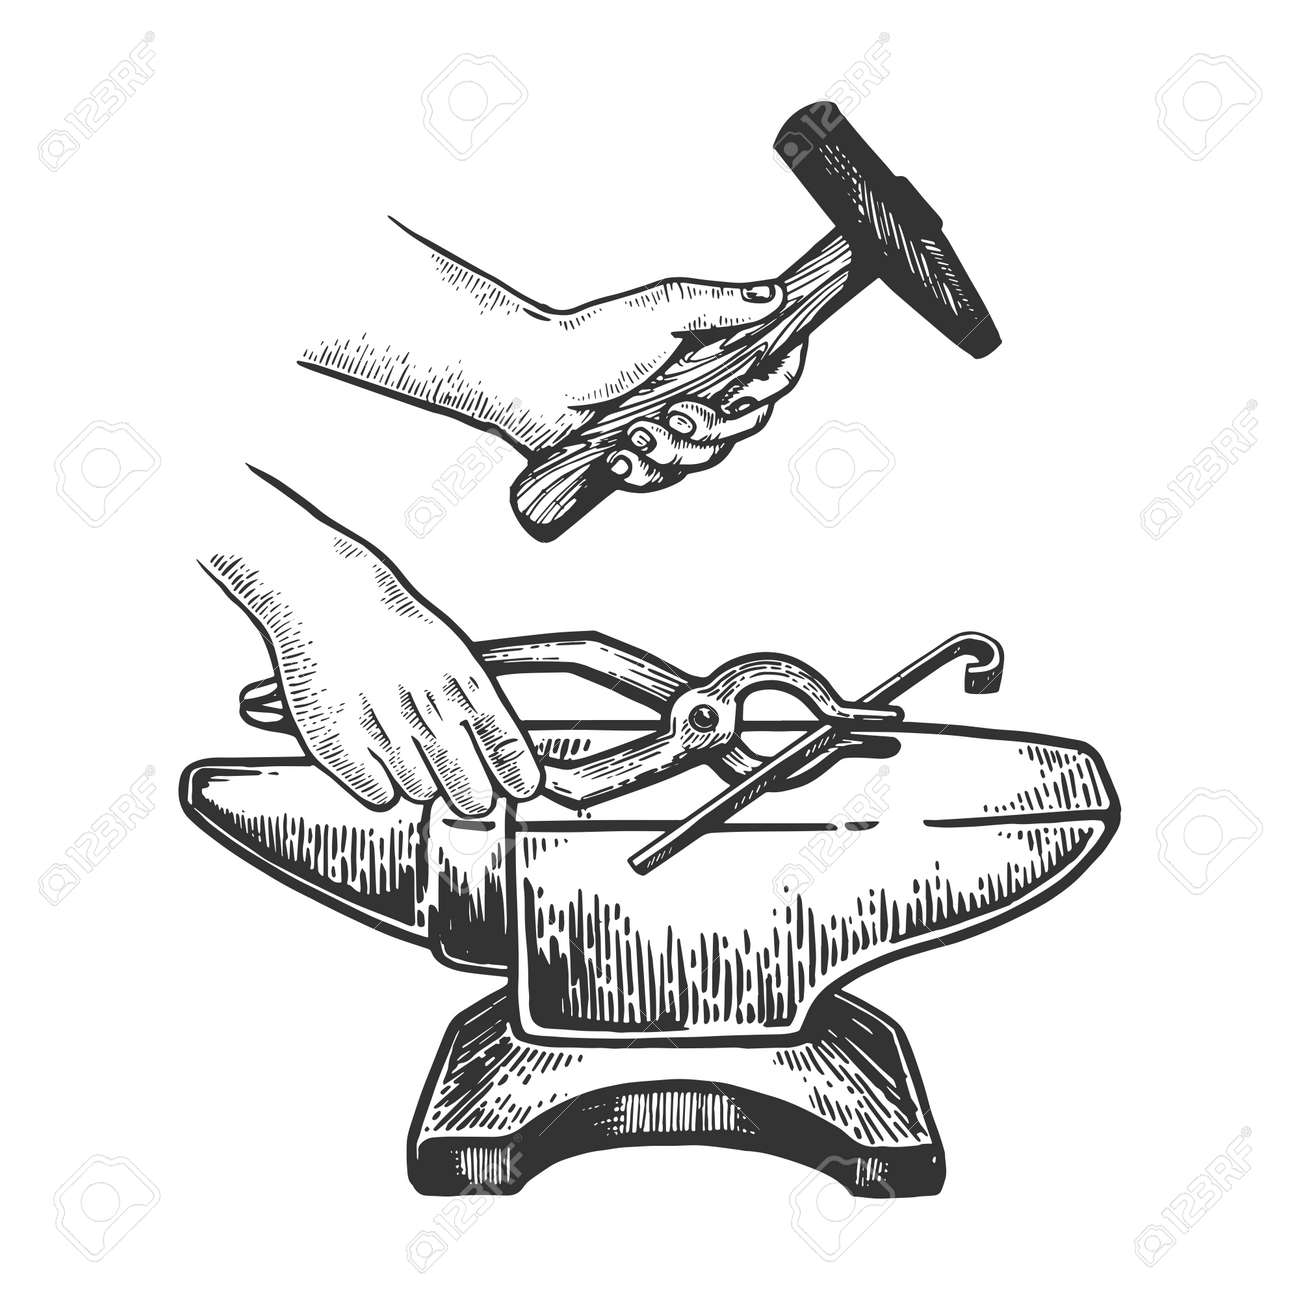 Blacksmith works on anvil with hammer engraving vector illustration. Scratch board style imitation. Black and white hand drawn image. - 107923211